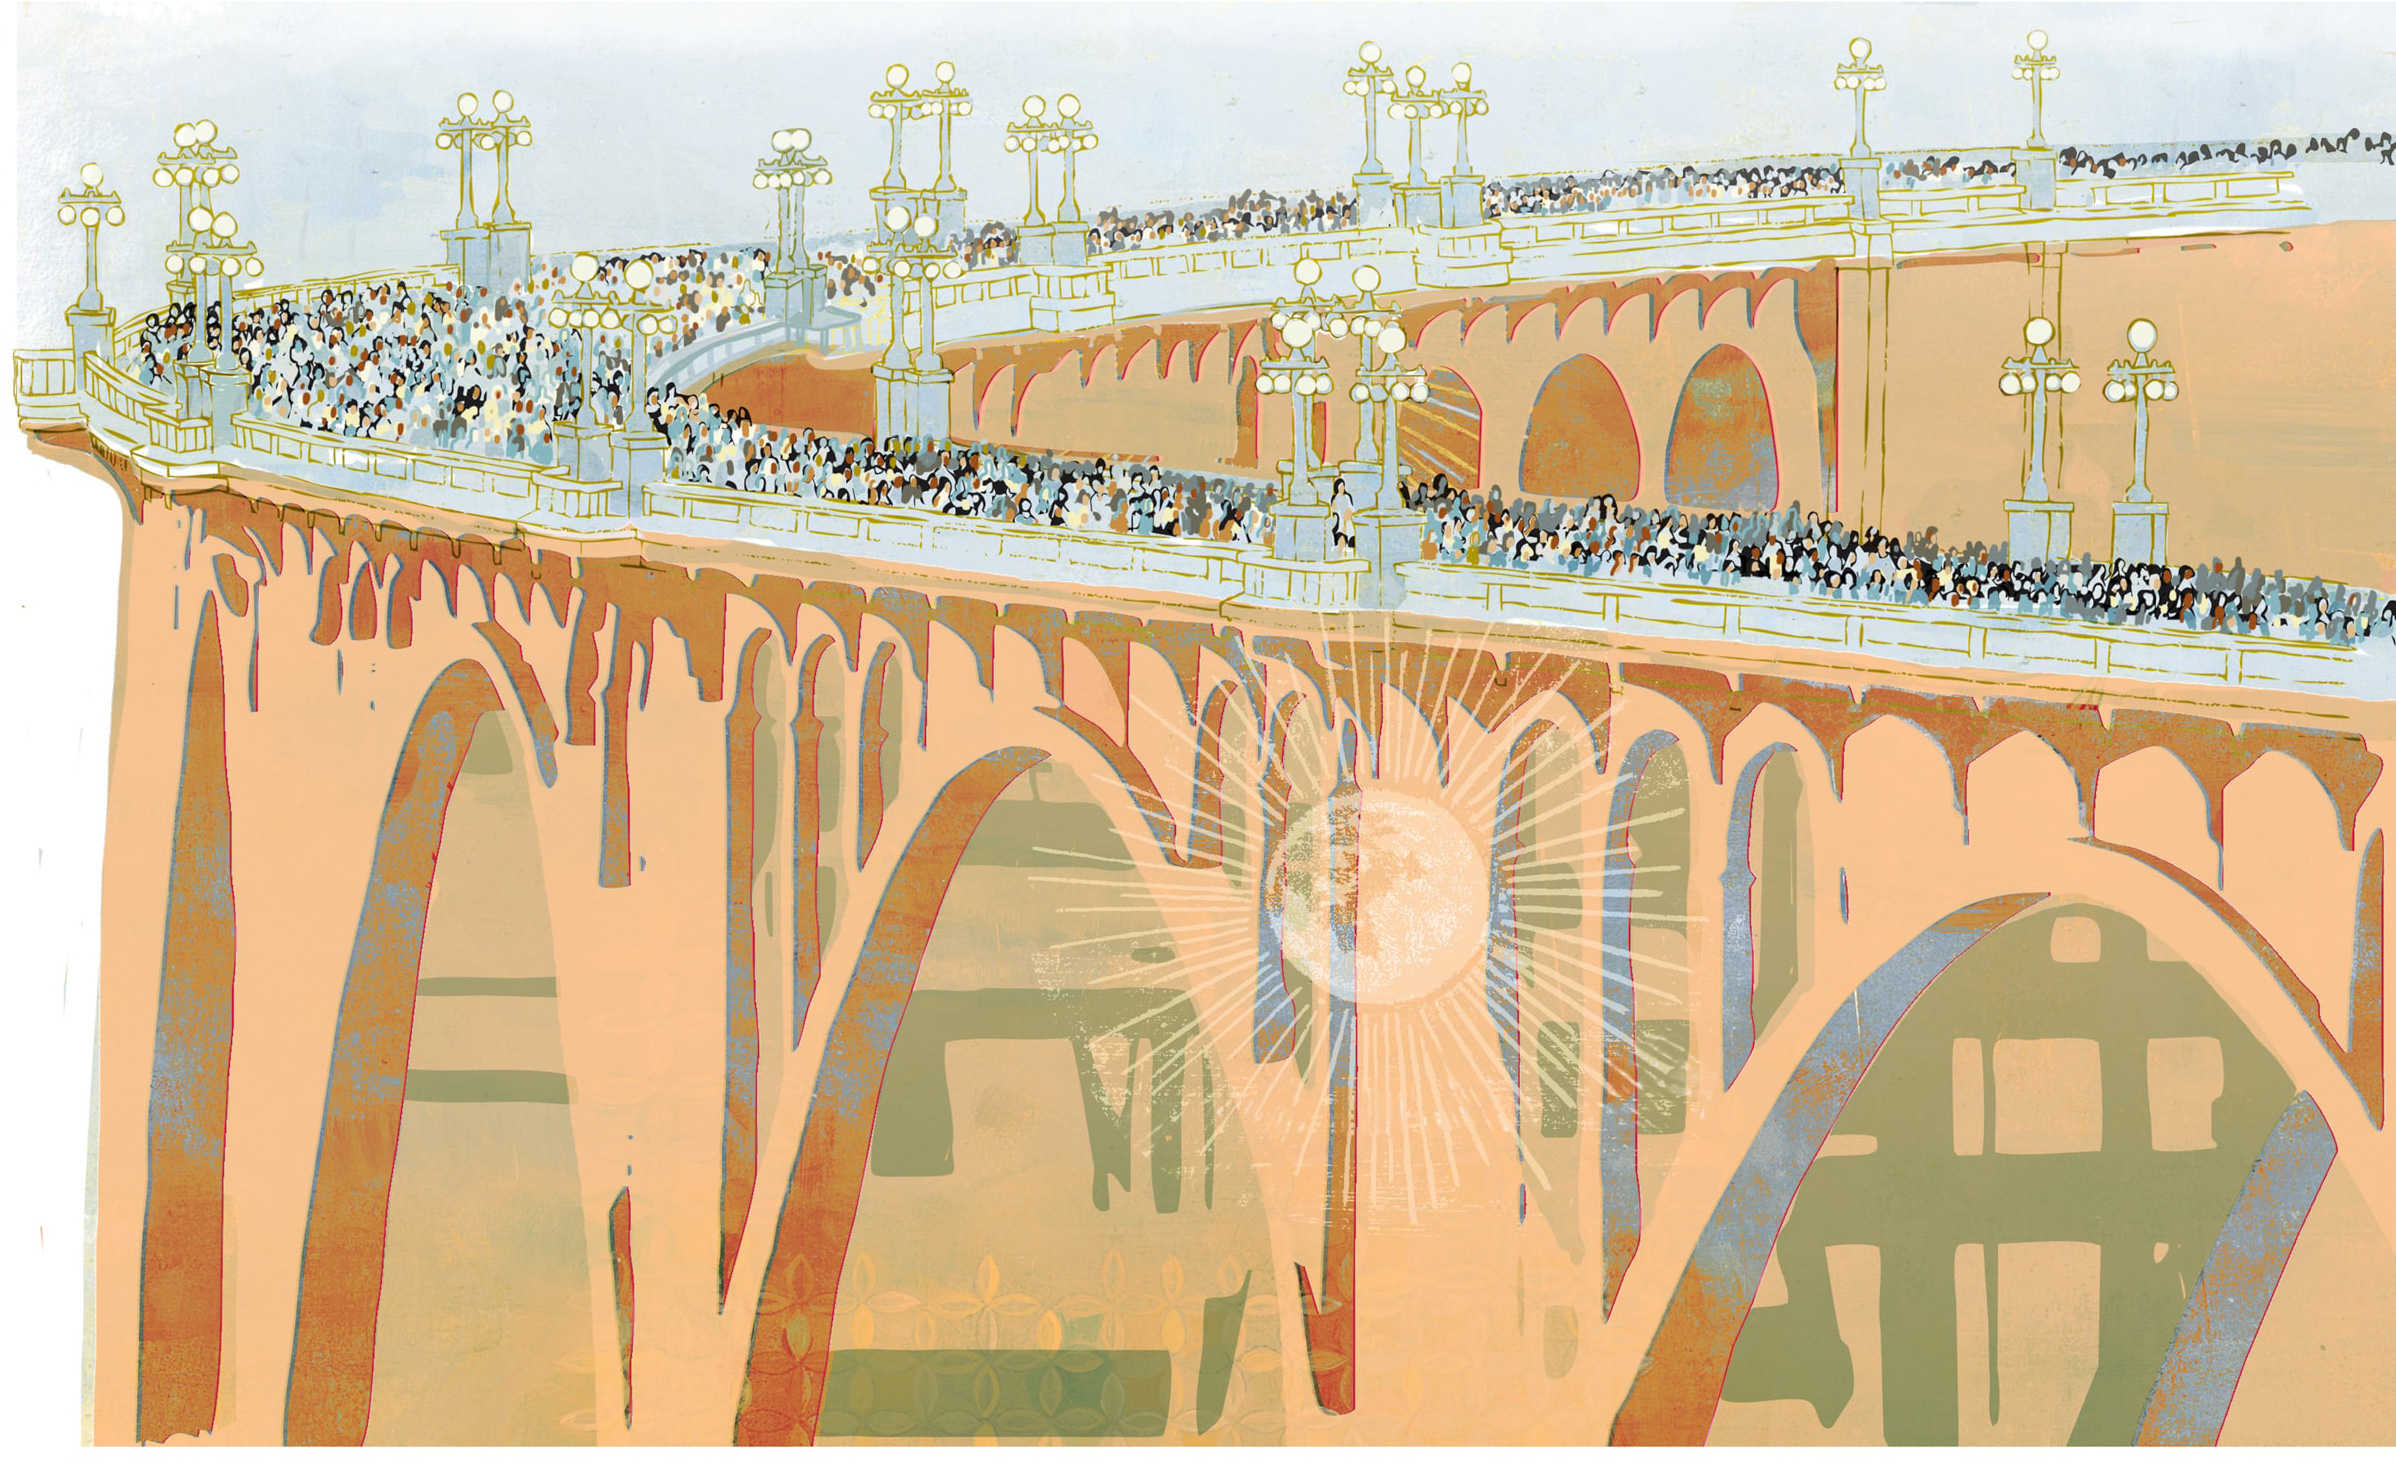 Illustration by Denise Louise Klitsie of the Colorado Street Bridge in Pasadena for FULLER magazine